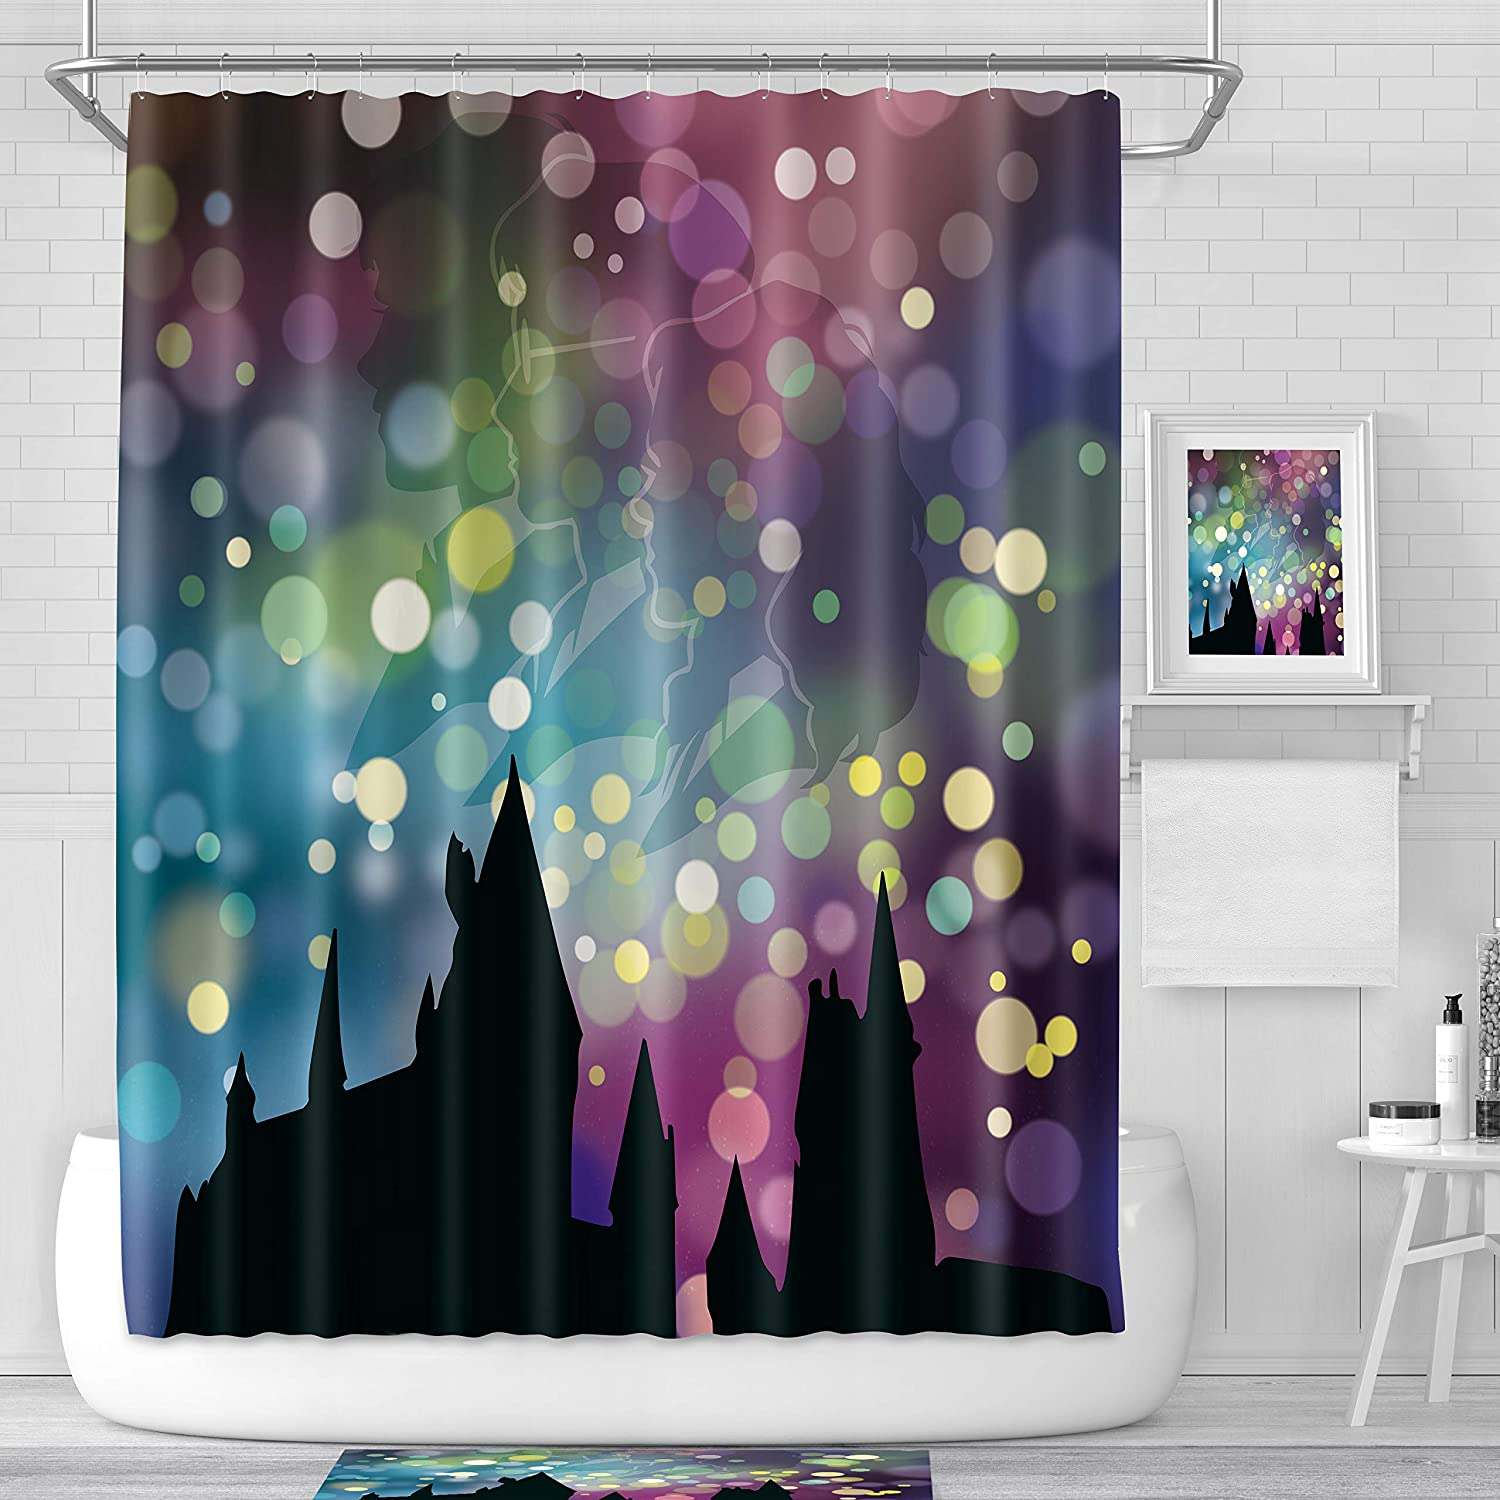 LIGHTINHOME Nicolas Cage Beside Blue Ocean Shower Curtain Set Stone Polyester Waterproof Fabric Shower Curtain Panel 72x72 Inch with 12-Pack Plastic Metal Shower Hooks for Bathtub YKKJ